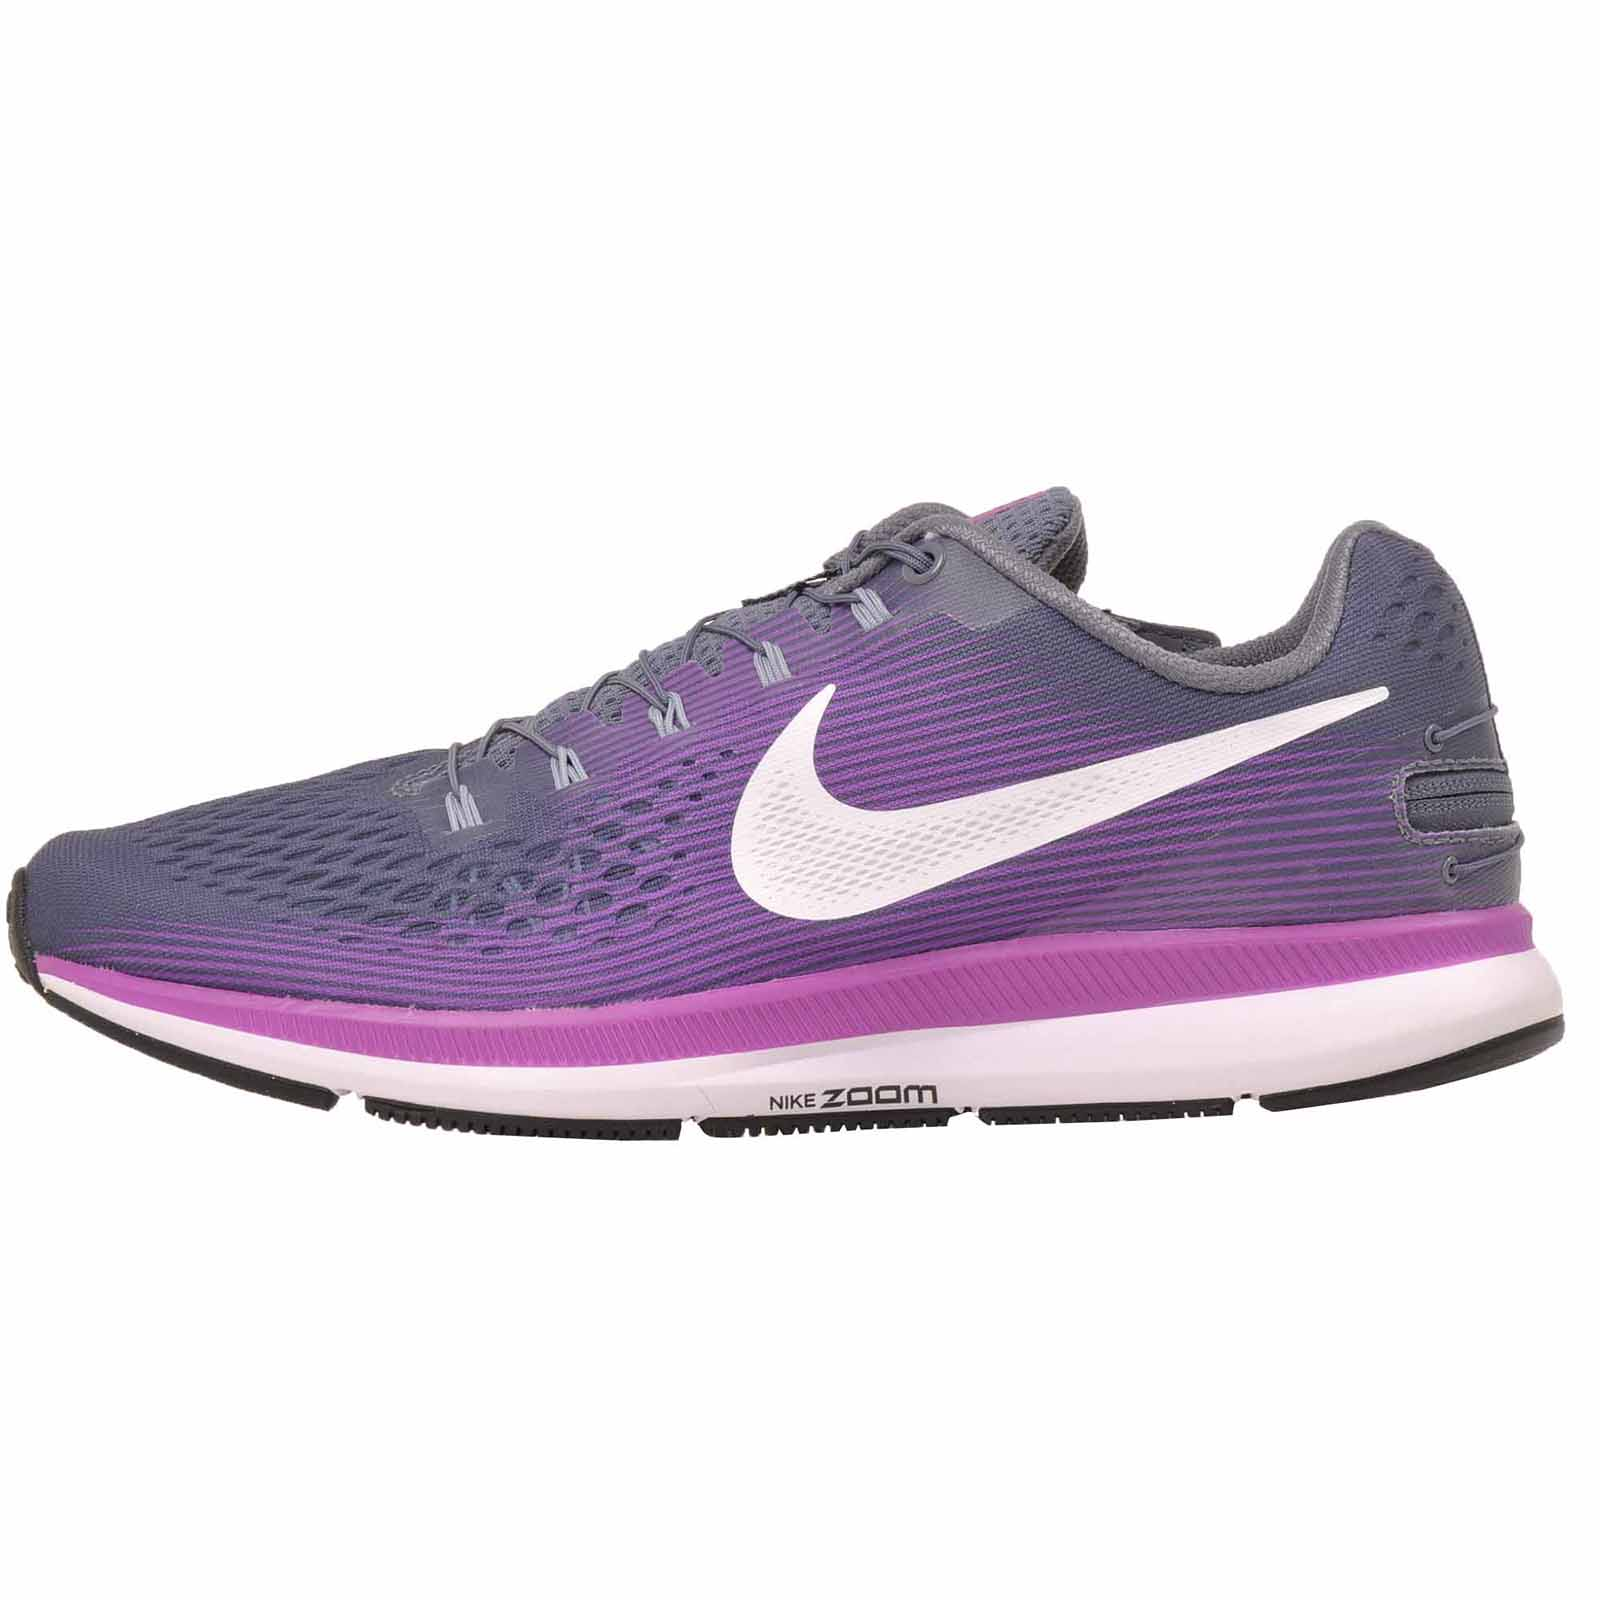 Details about Nike W Air Zoom Pegasus 34 Flyease Running Womens Shoes Light  Carbon 904679-005 163fcc7d7